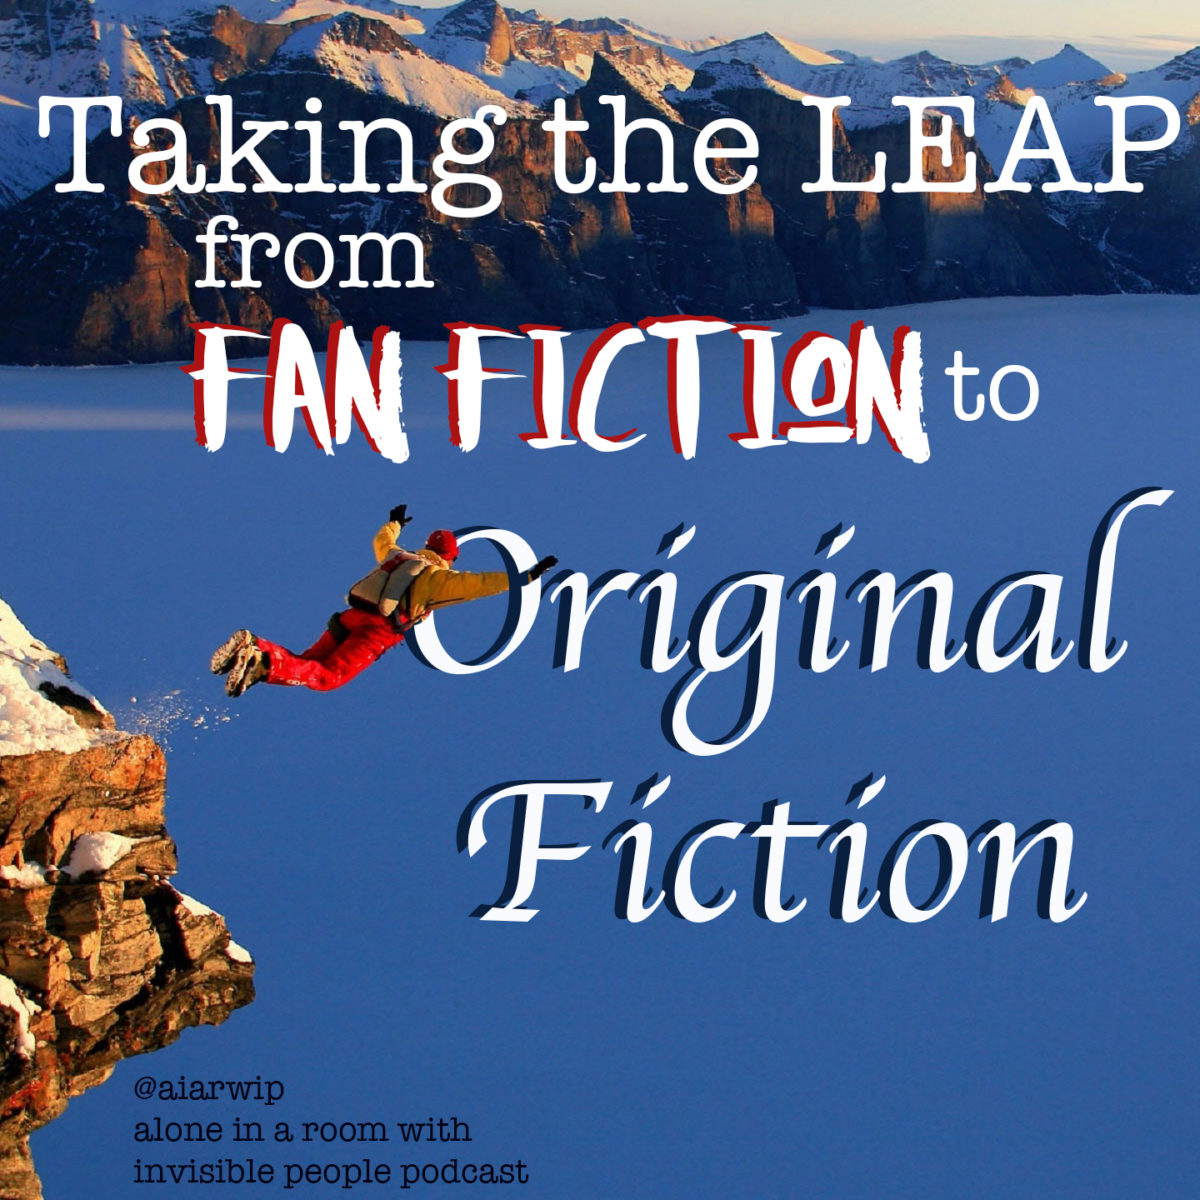 Episode 16: Taking the Leap – From Fan Fiction to Original Fiction